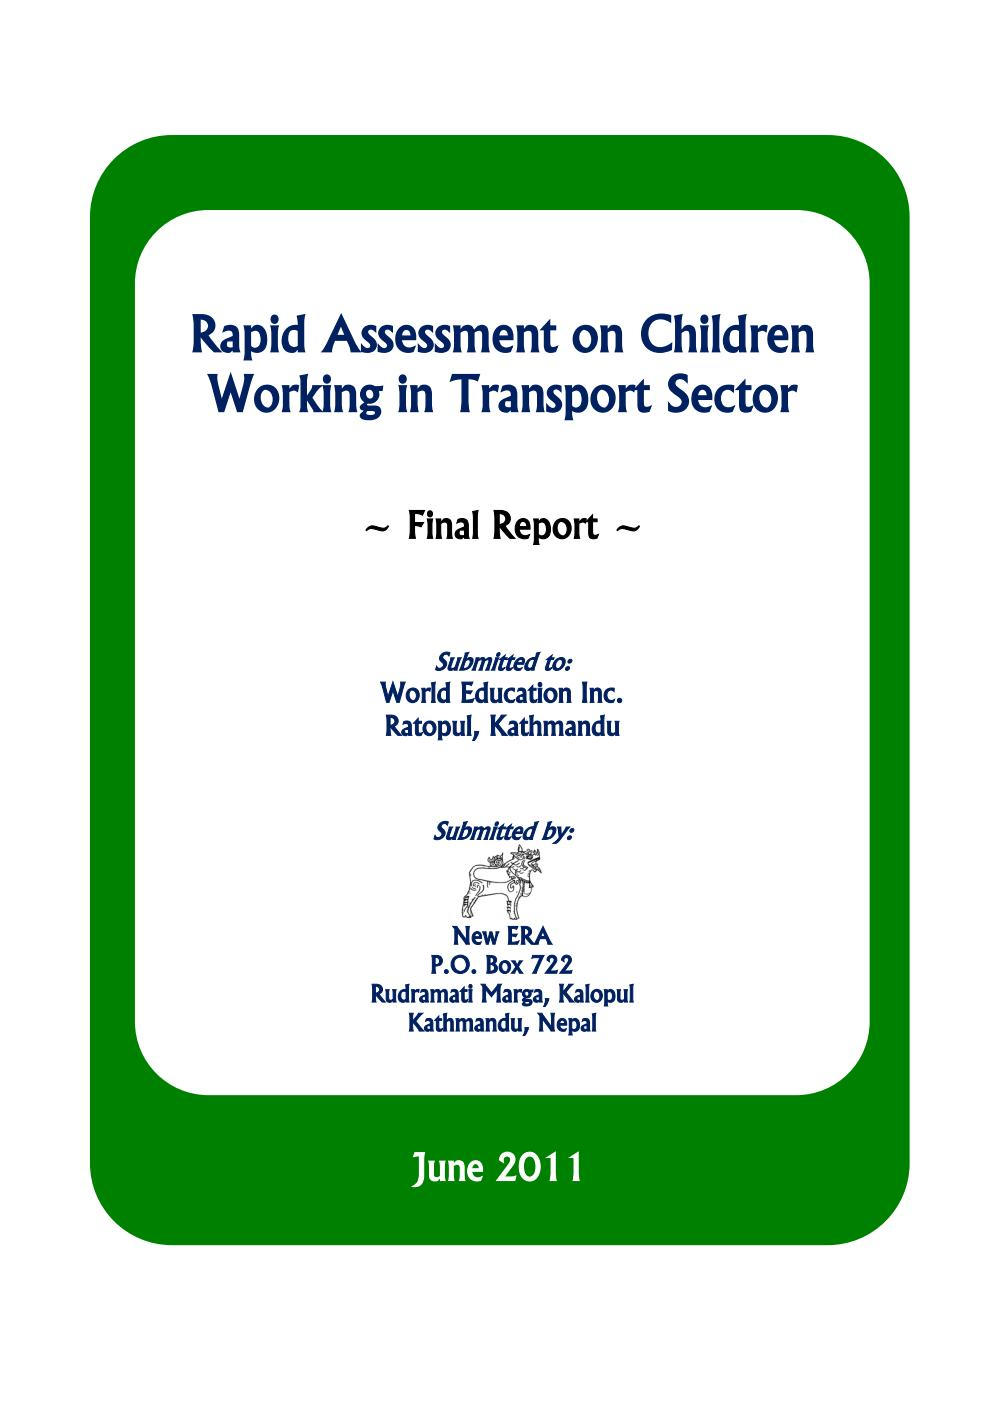 Rapid Assessment on Children Working in Transport Sector